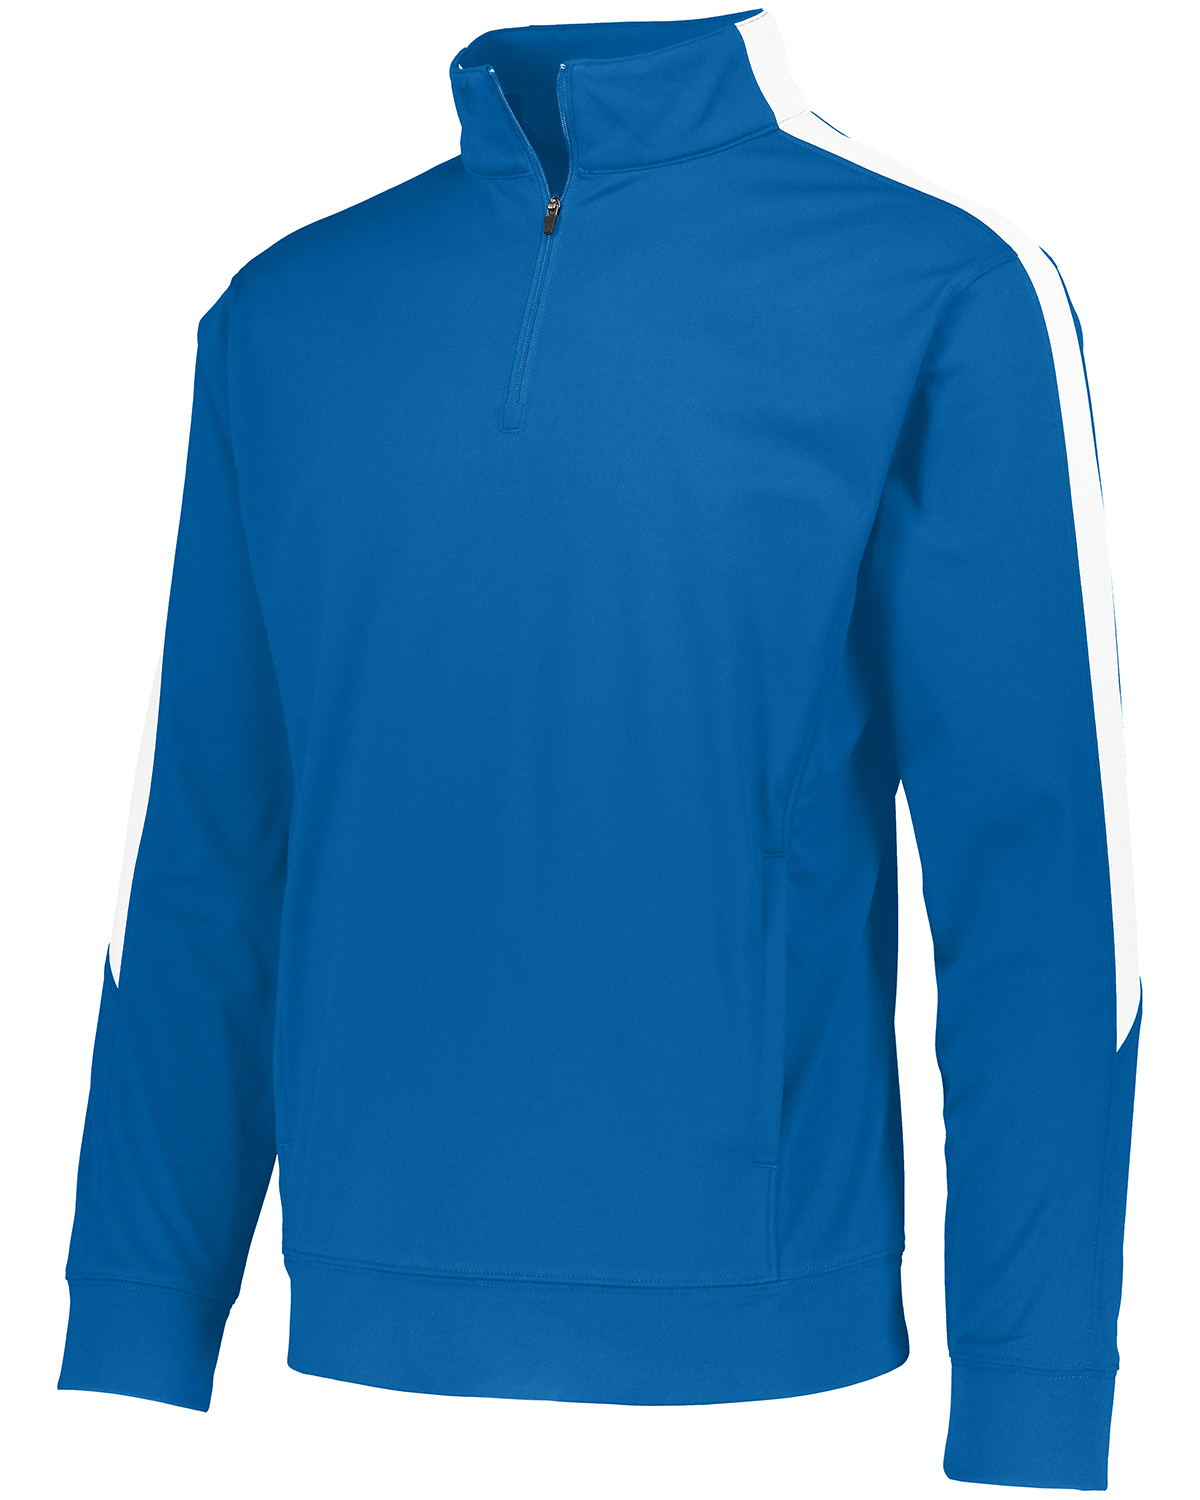 Augusta Drop Ship 4387 - Youth Medalist 2.0 Pullover